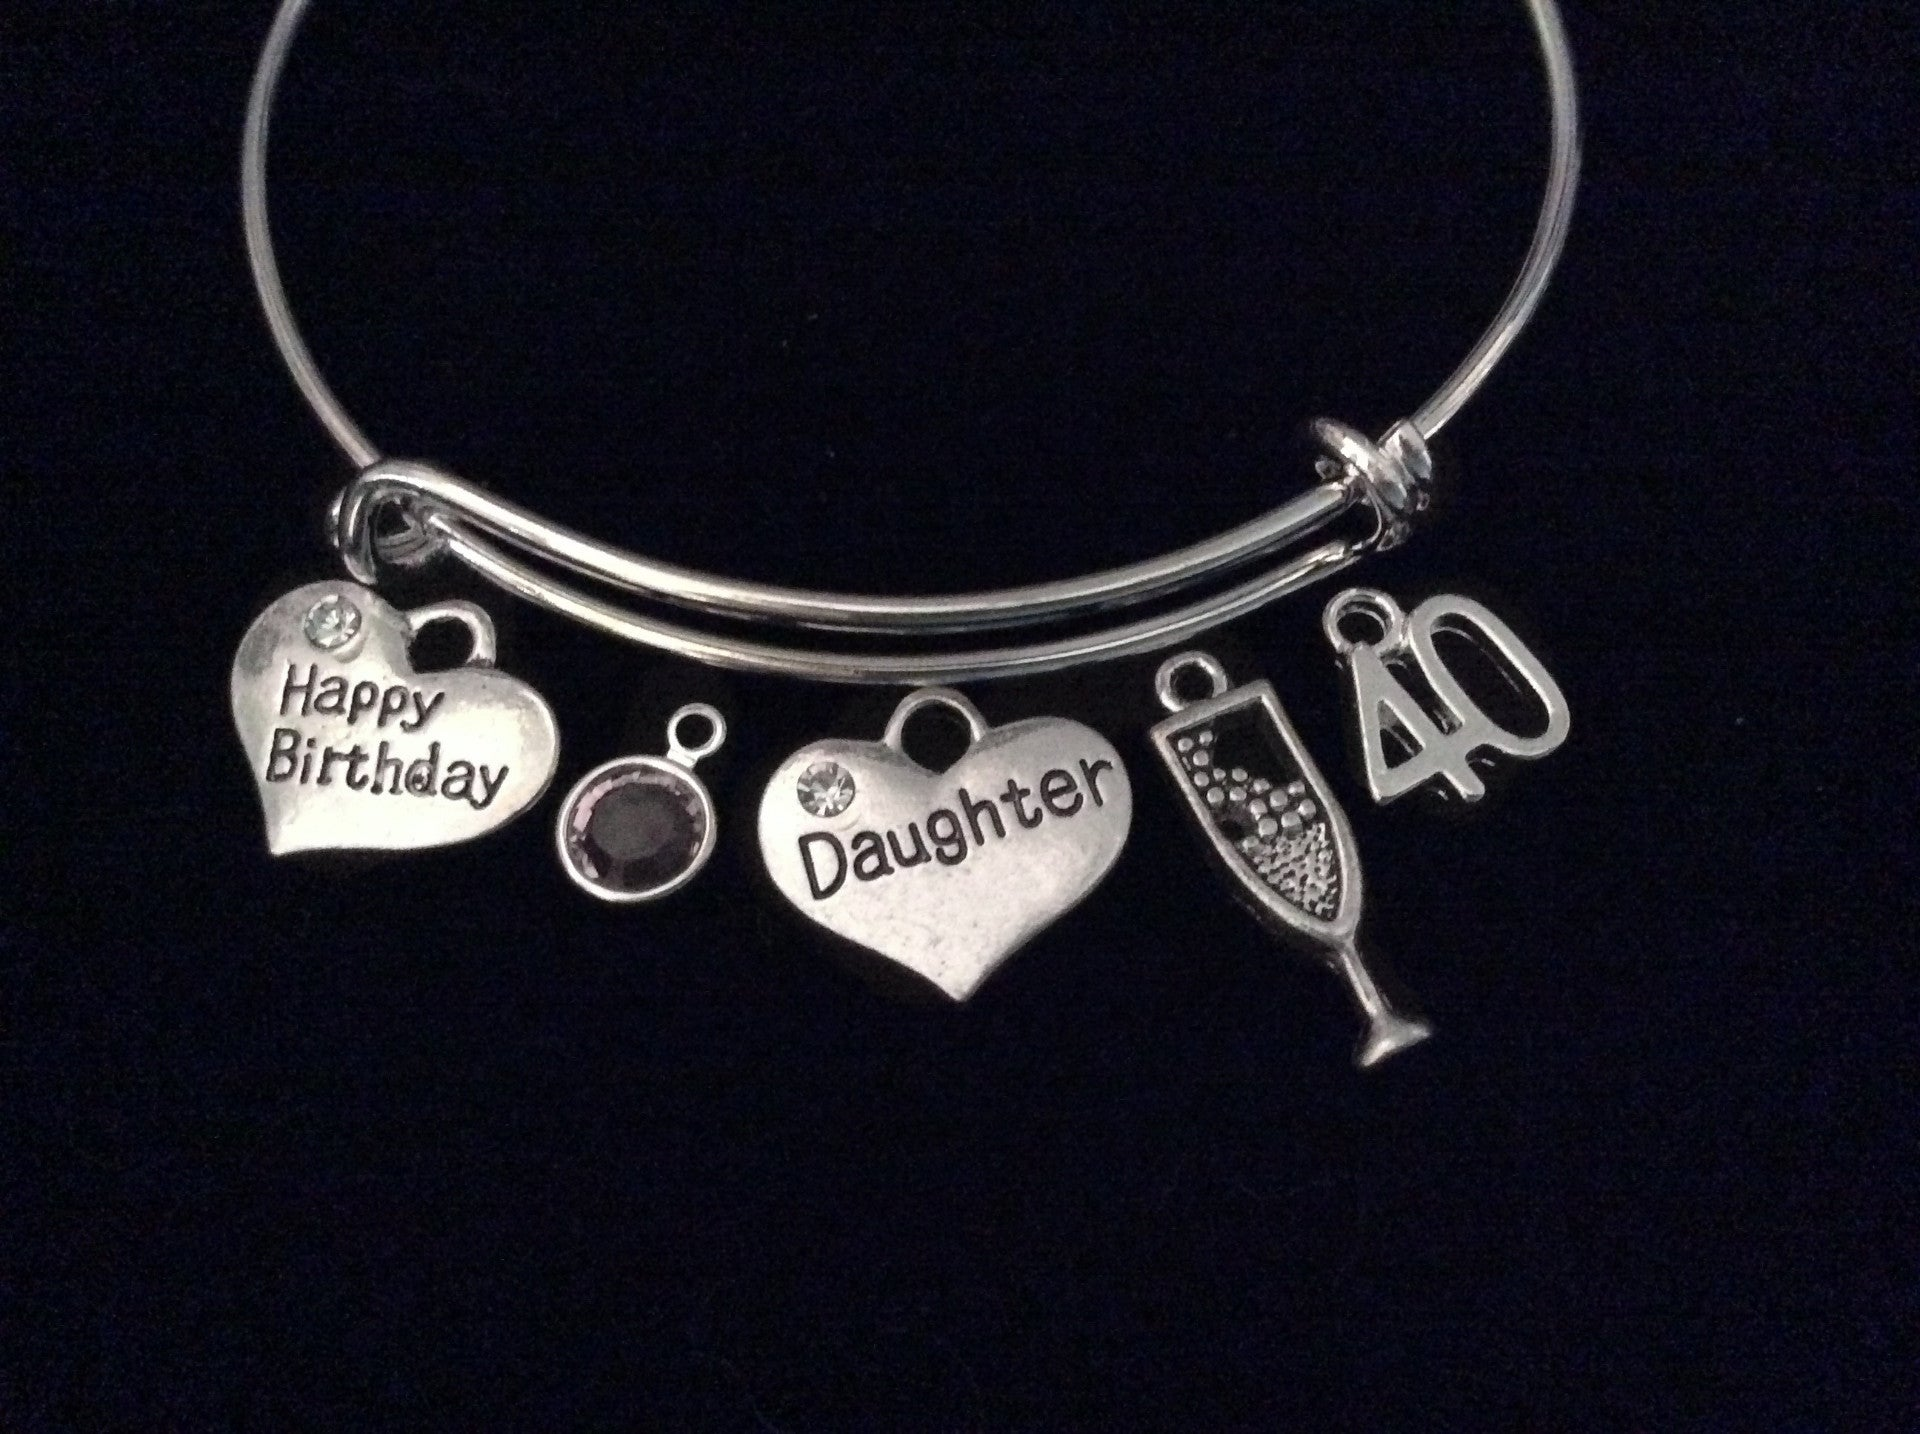 Daughter Happy 40th Birthday Expandable Charm Bracelet Adjustable Bangle Gift Champagne Glass Birthstone